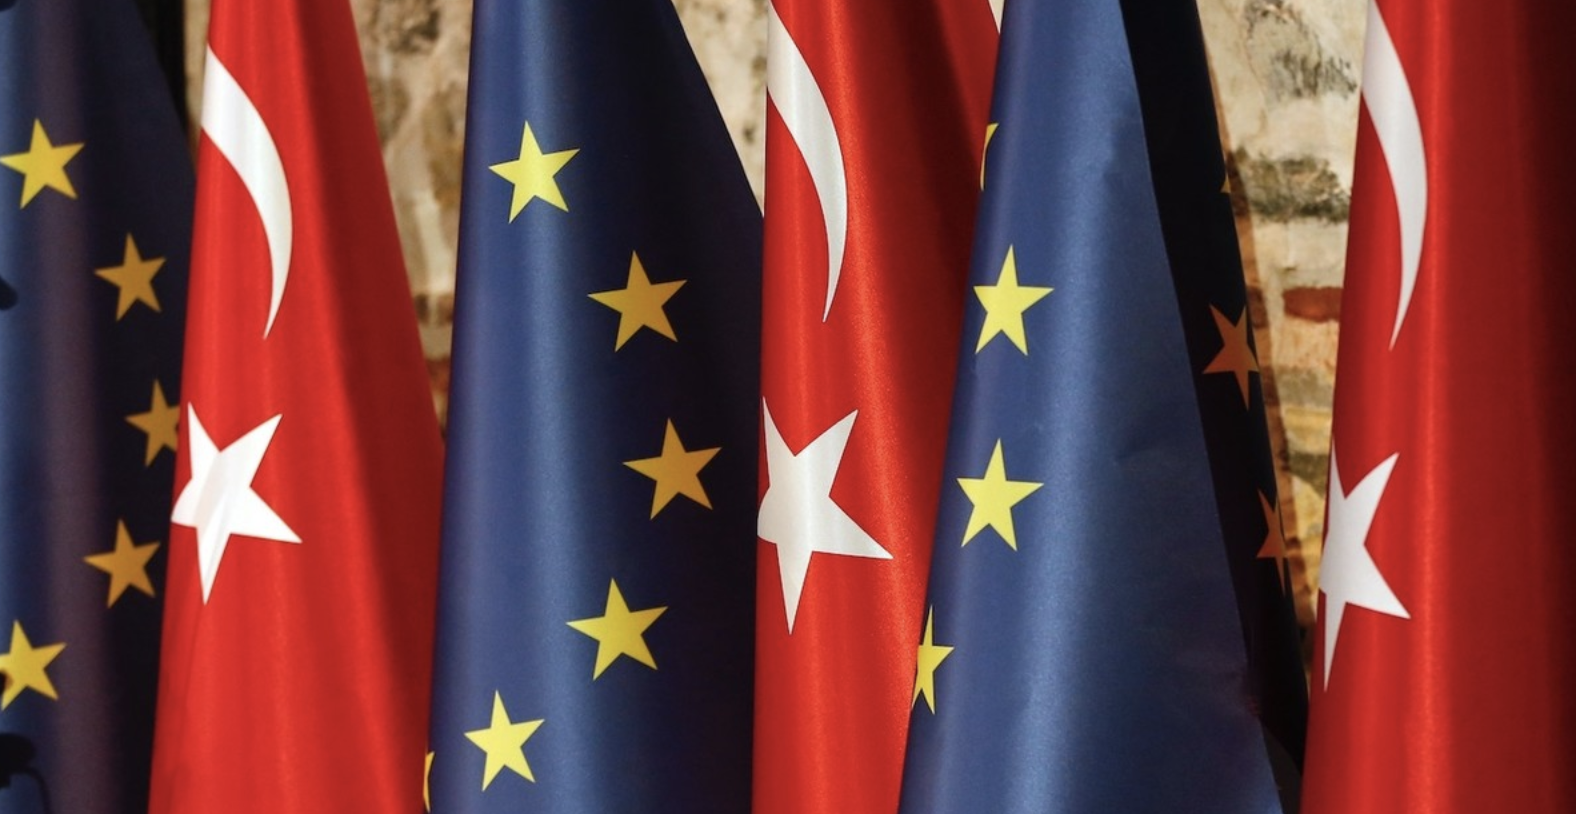 Five years since the EU-Turkey Joint Declaration with thoughts on updating it